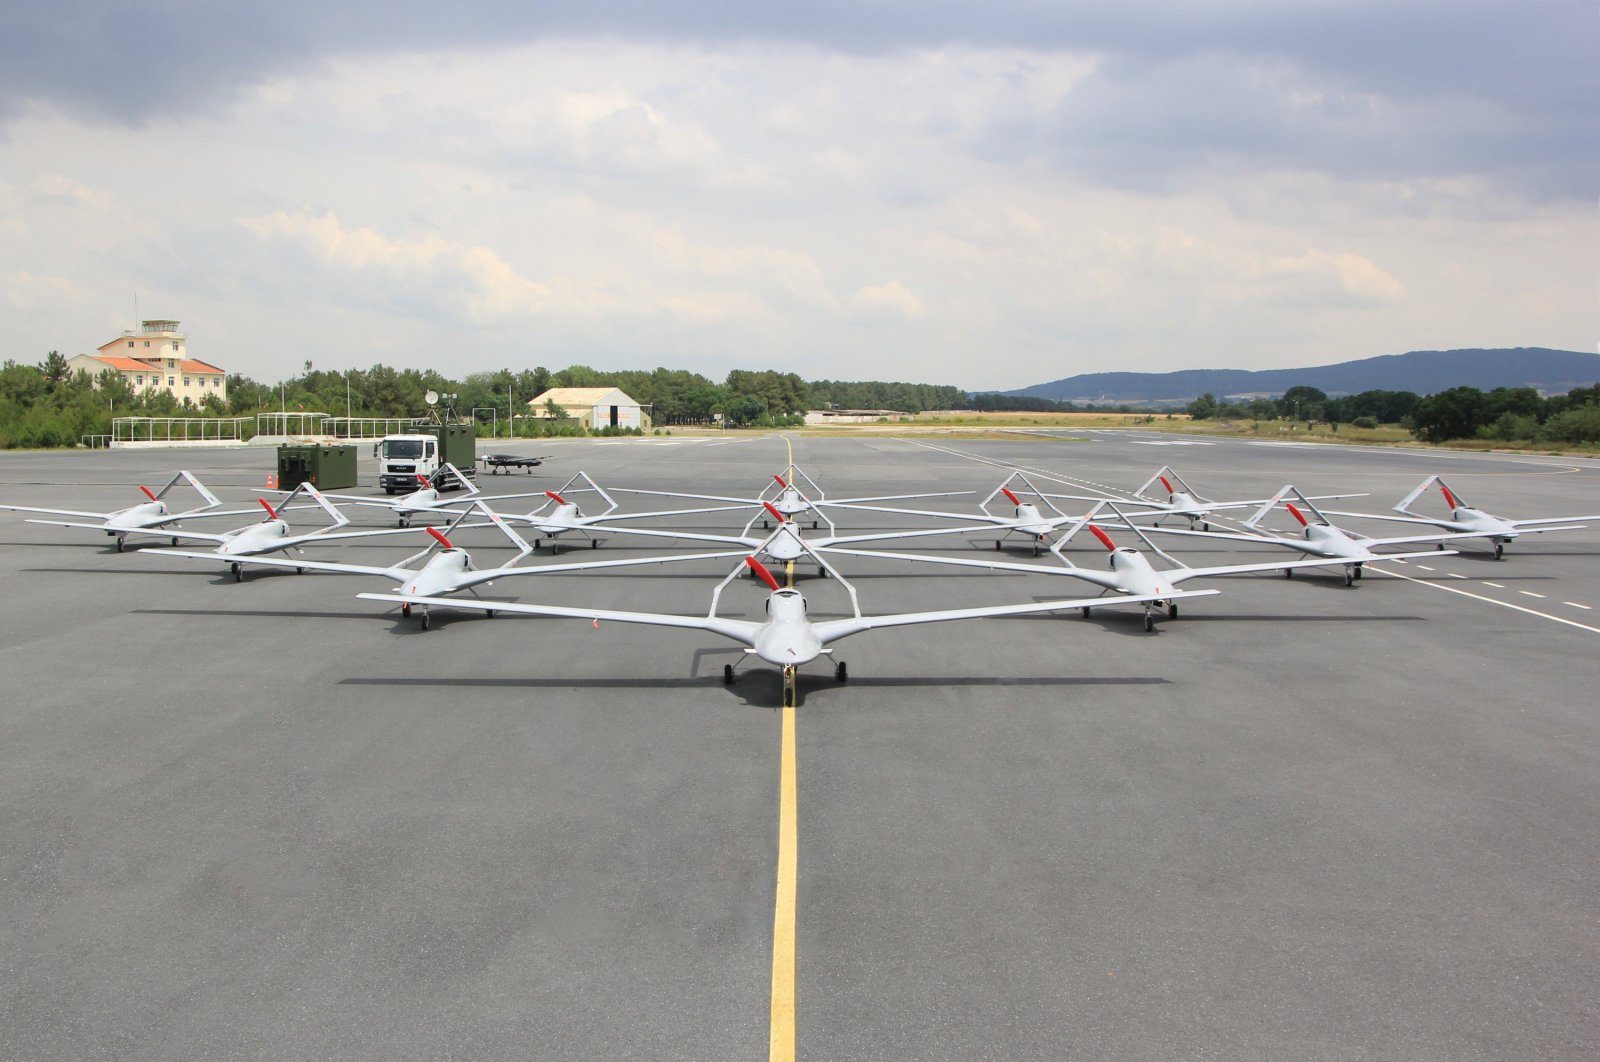 Bayraktar TB2 unmanned aerial vehicles (UAVs) are seen parked at an airfield in Istanbul, Turkey, June 11, 2020. (AA Photo)